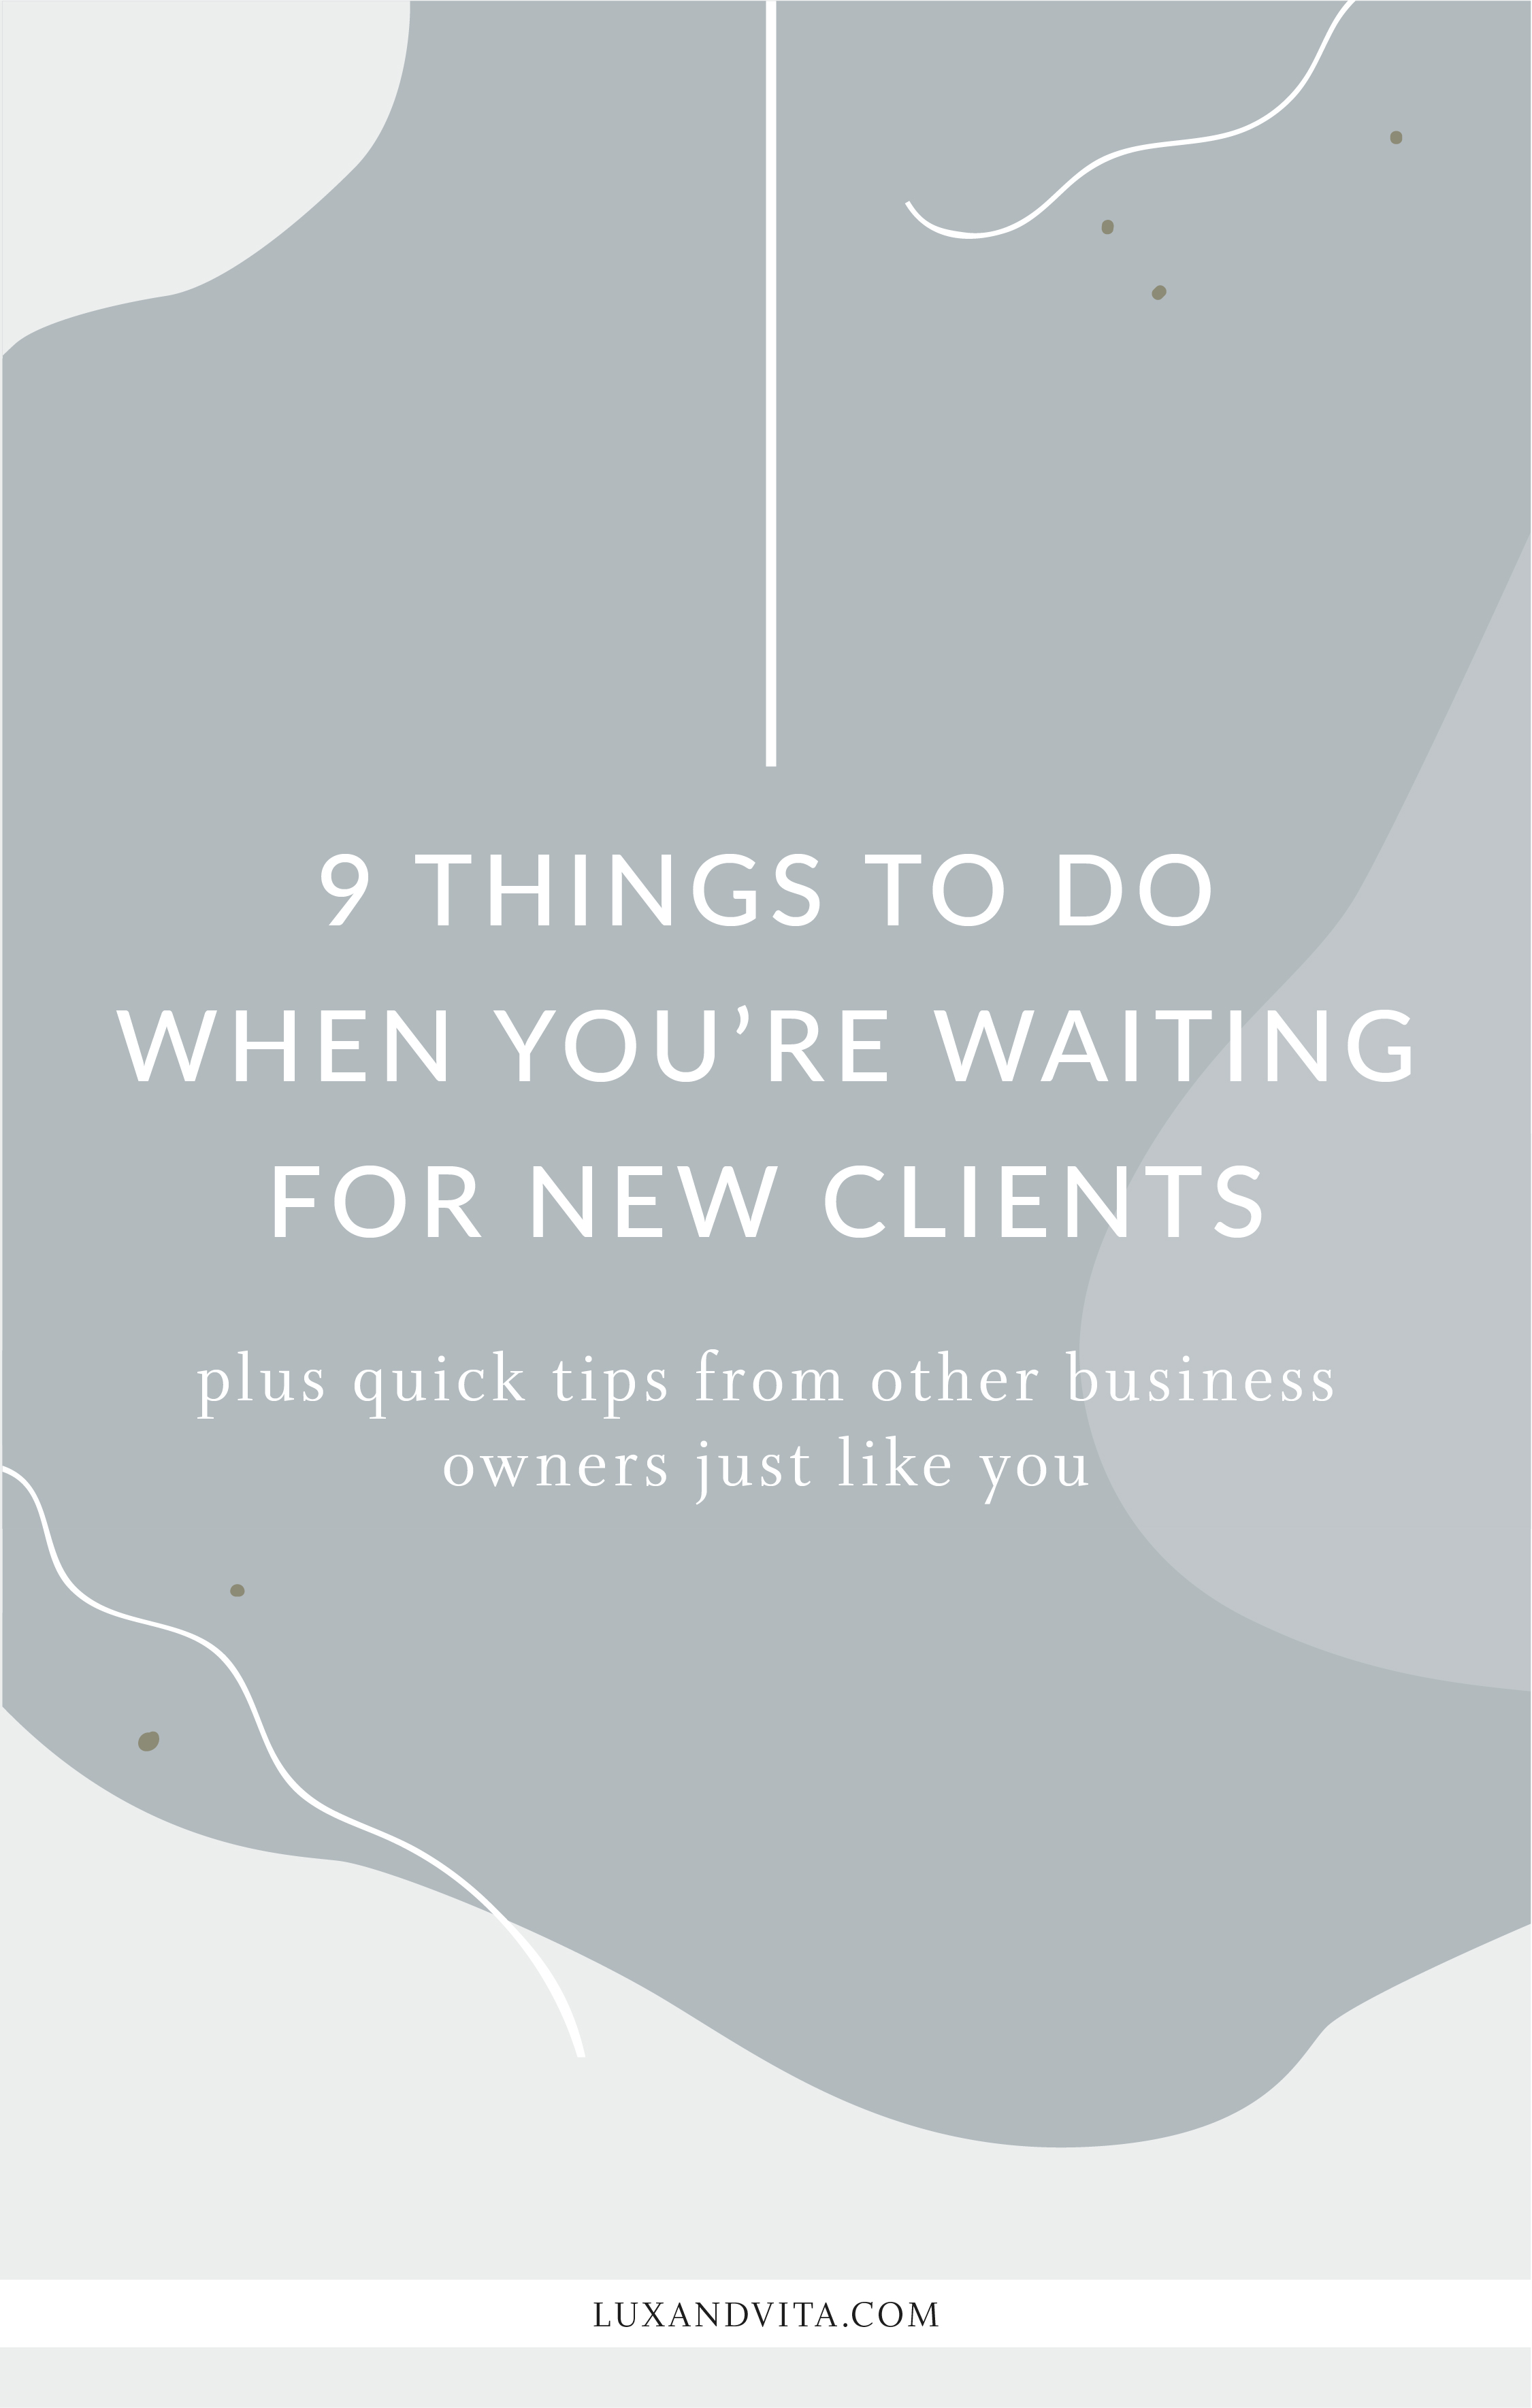 9 Things to do when business is slow_Pinterest 3.jpg